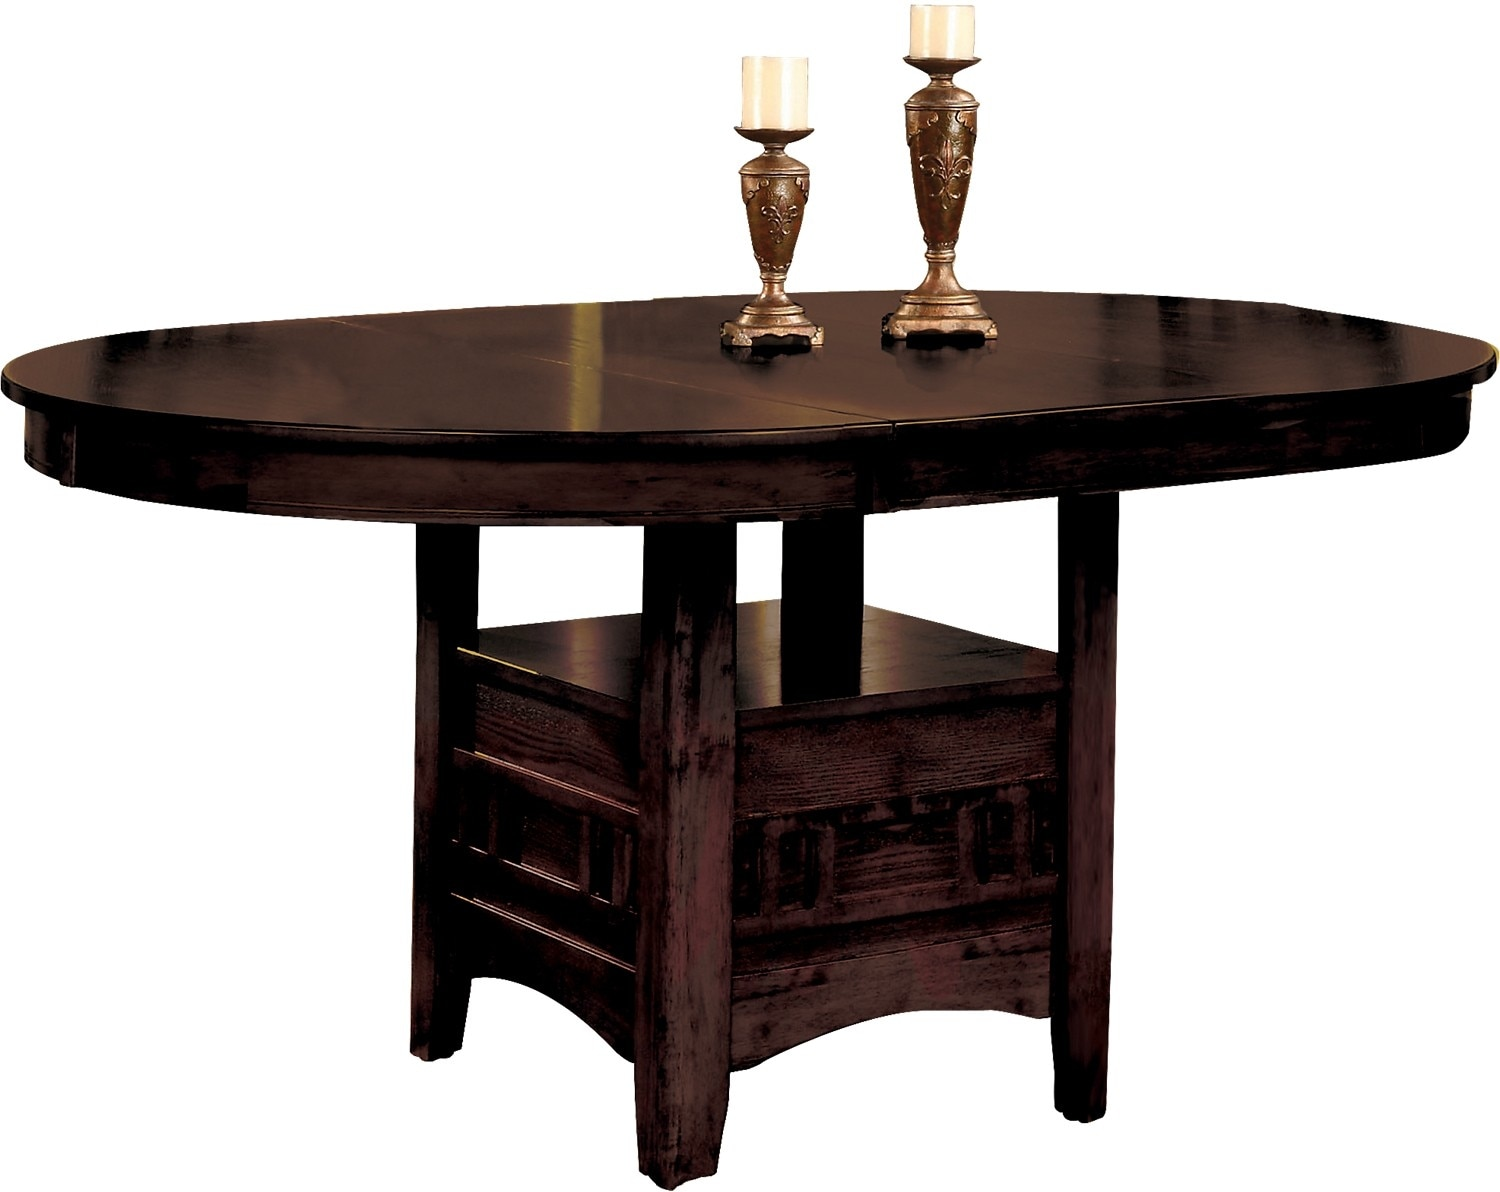 Dalton Chocolate Dining Table